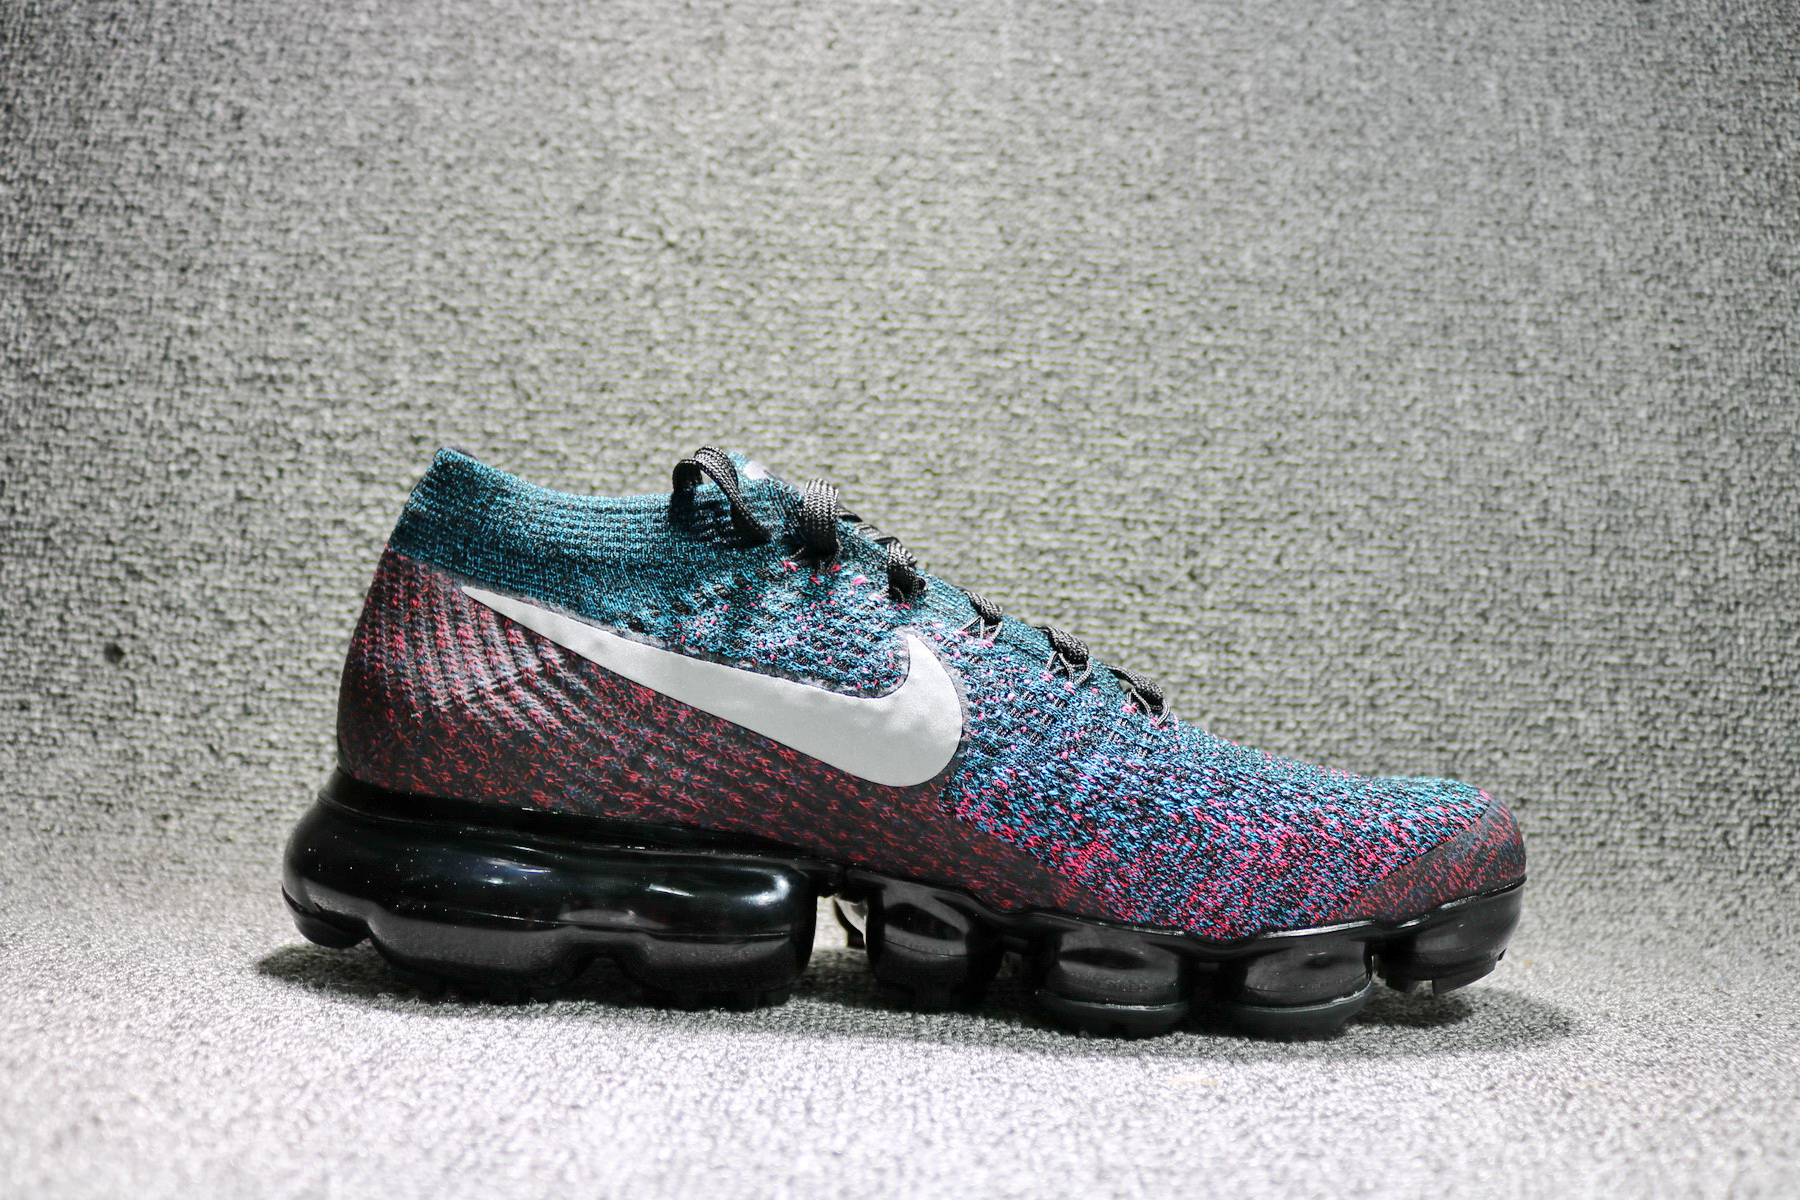 e87bba5b09 Nike Air VaporMax Flyknit Black Purple Red colorful 849558-403 - Febbuy